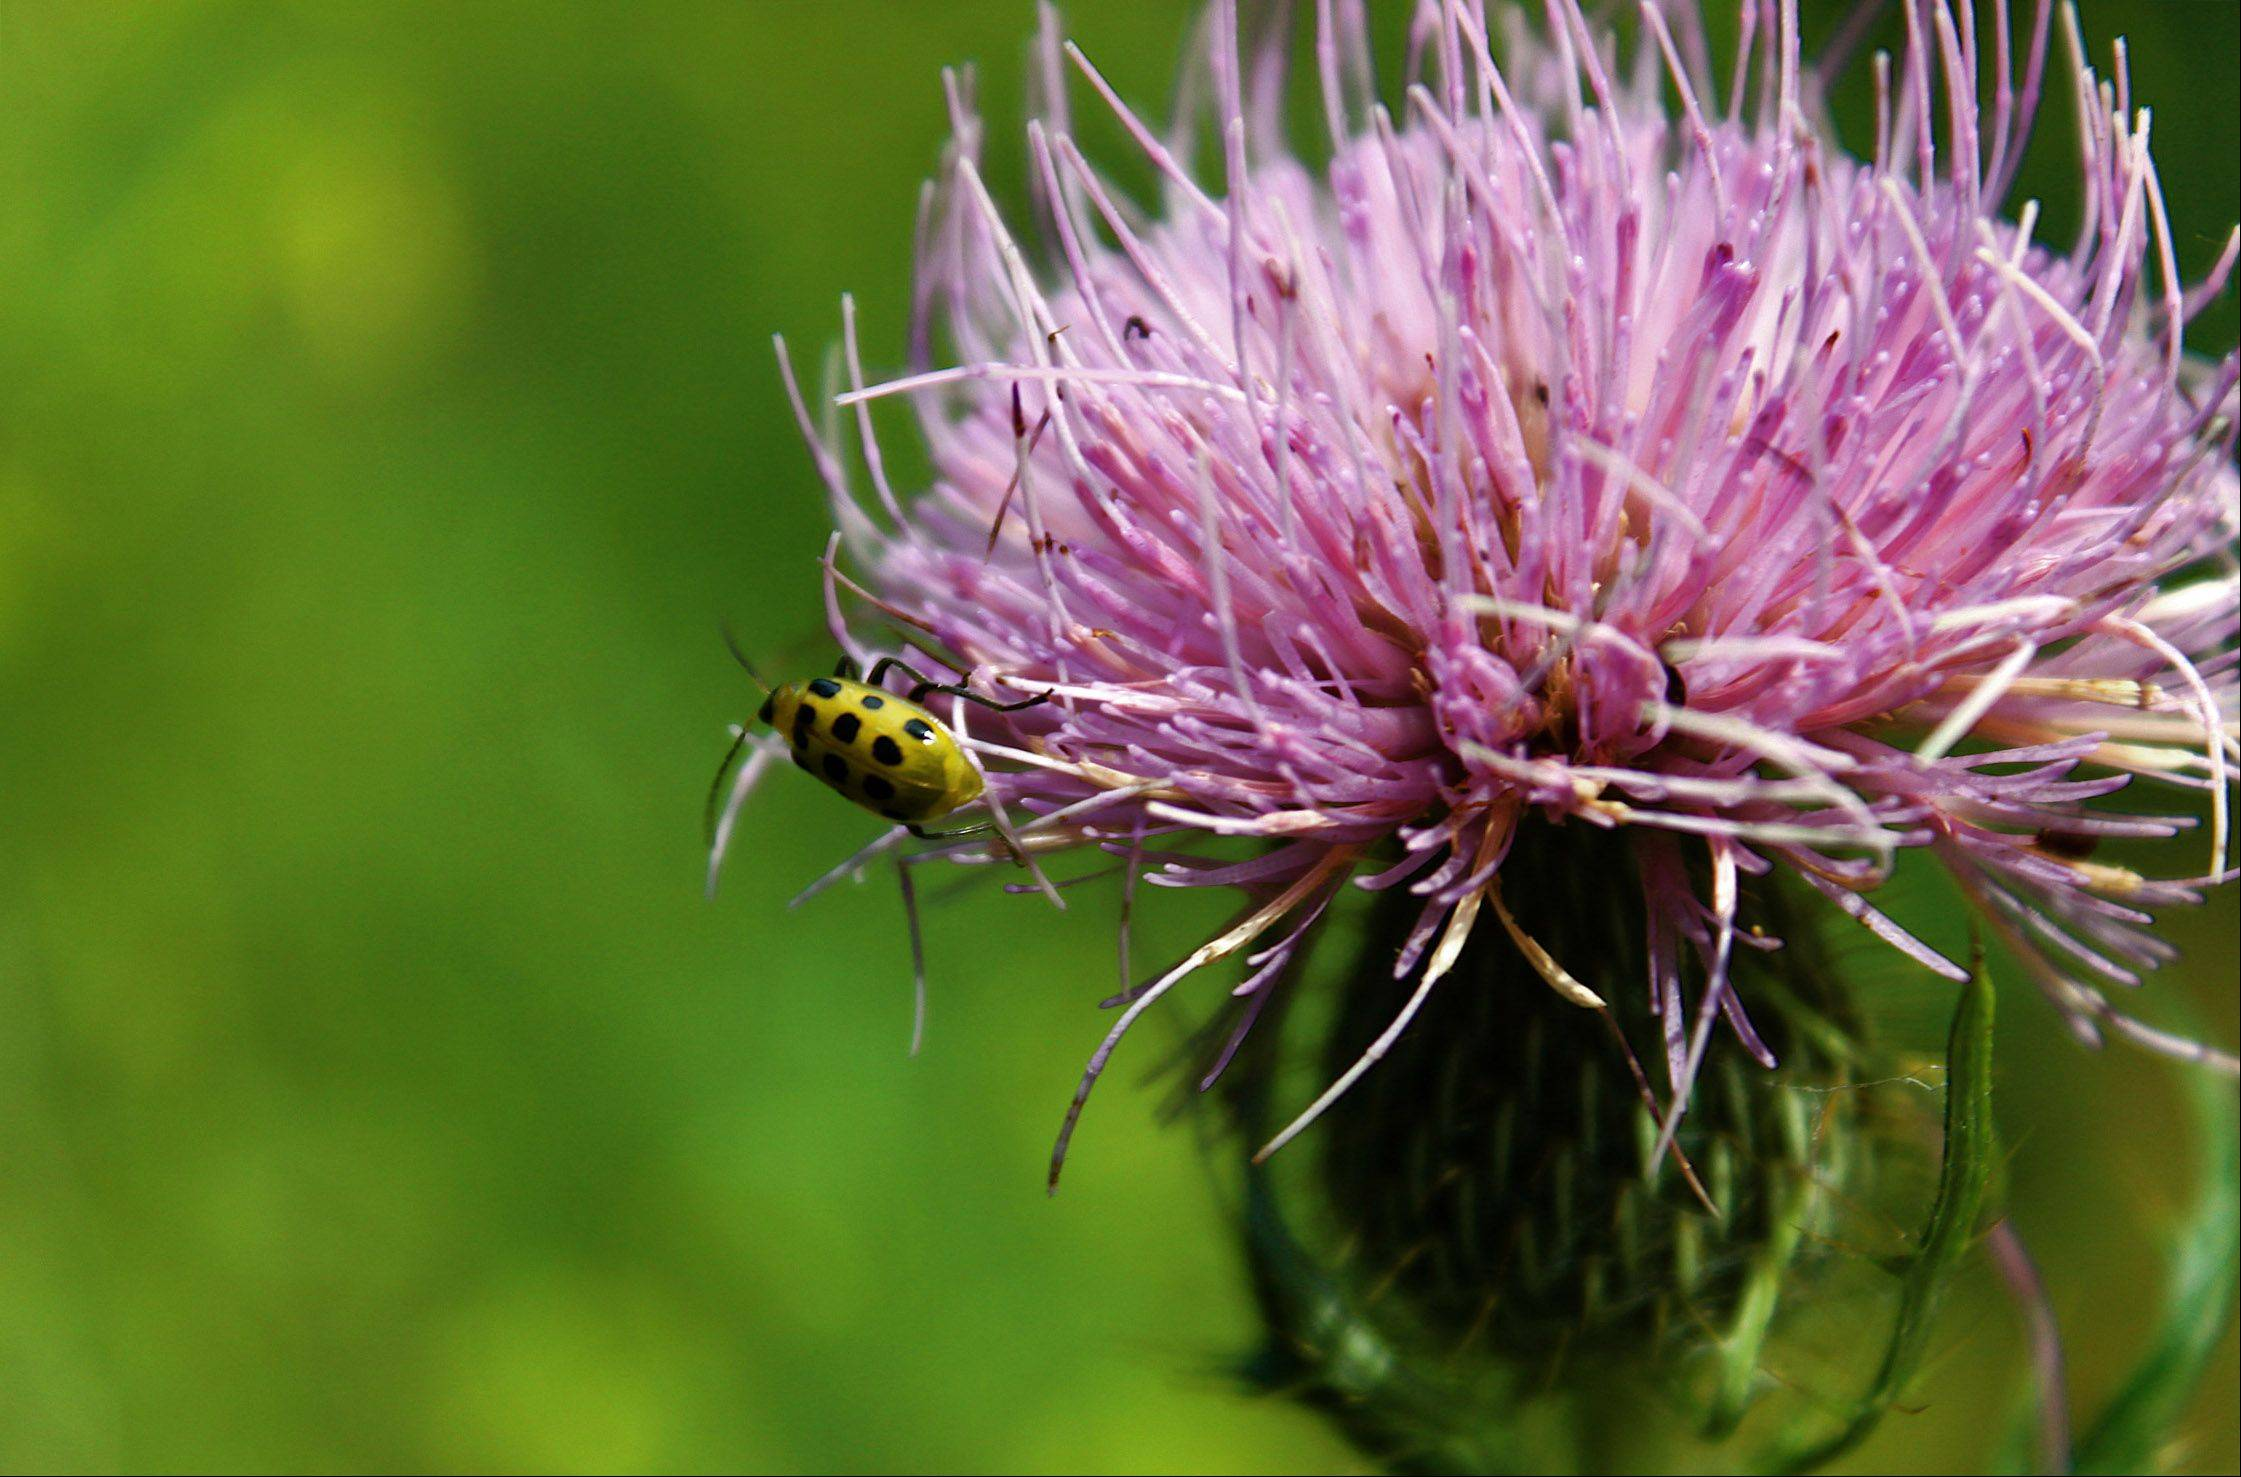 A curious insect investigates a lovely purple flower at Busse Woods in Elk Grove Village.